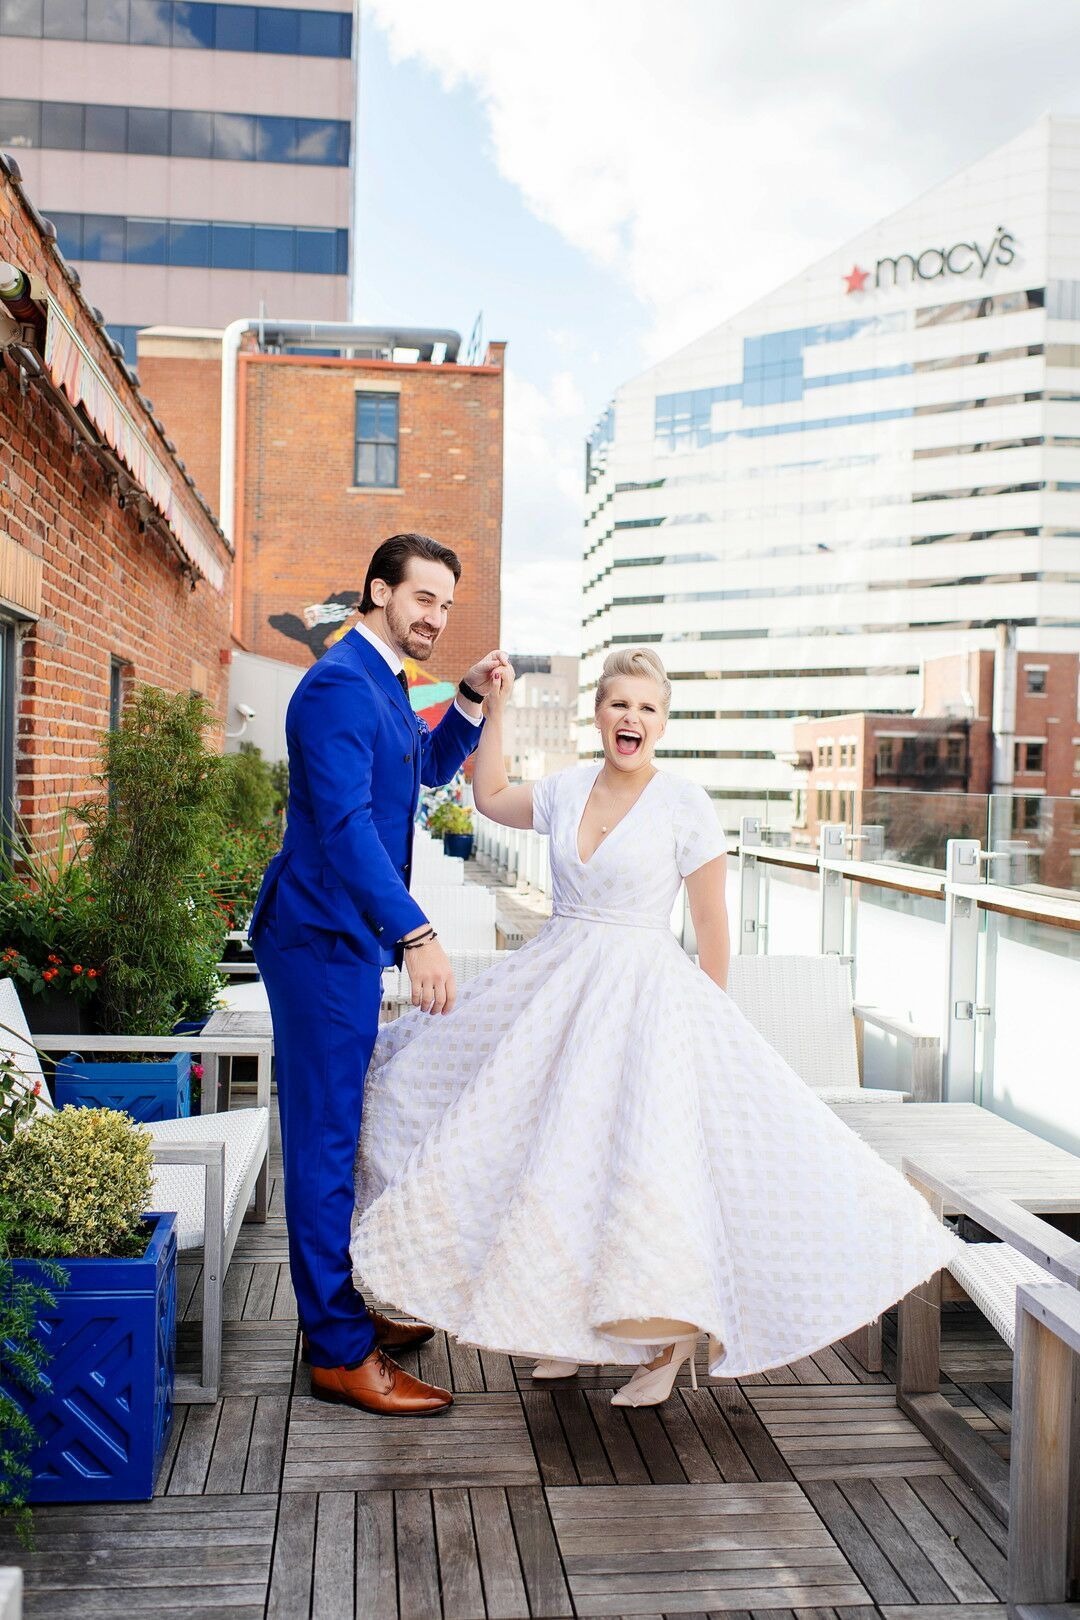 Eclectic Couple With Royal Blue Suit And Vintage Ankle Length Wedding Dress Ankle Length Wedding Dress Eclectic Wedding Royal Blue Suit [ 1620 x 1080 Pixel ]